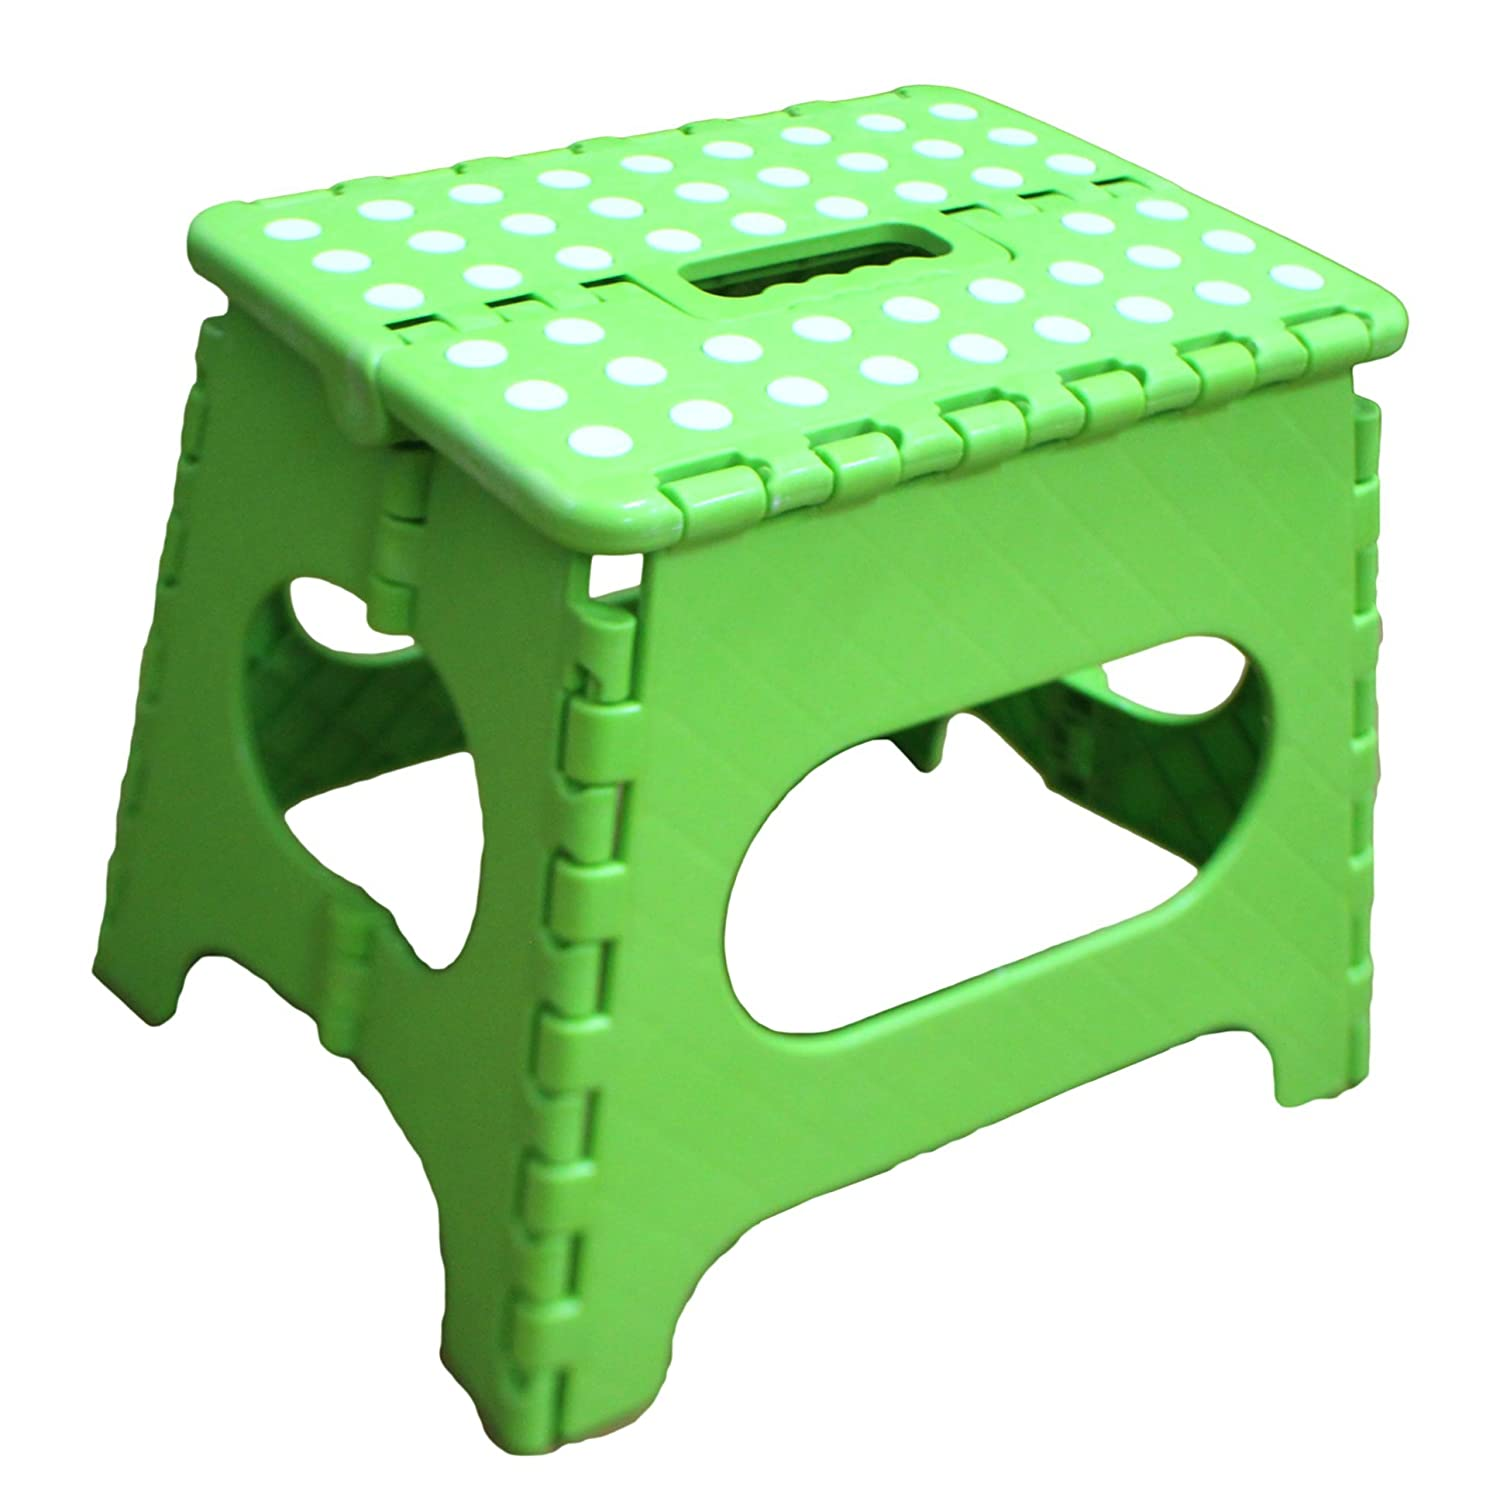 amazoncom jeronic 11inch plastic folding step stool green toys u0026 games